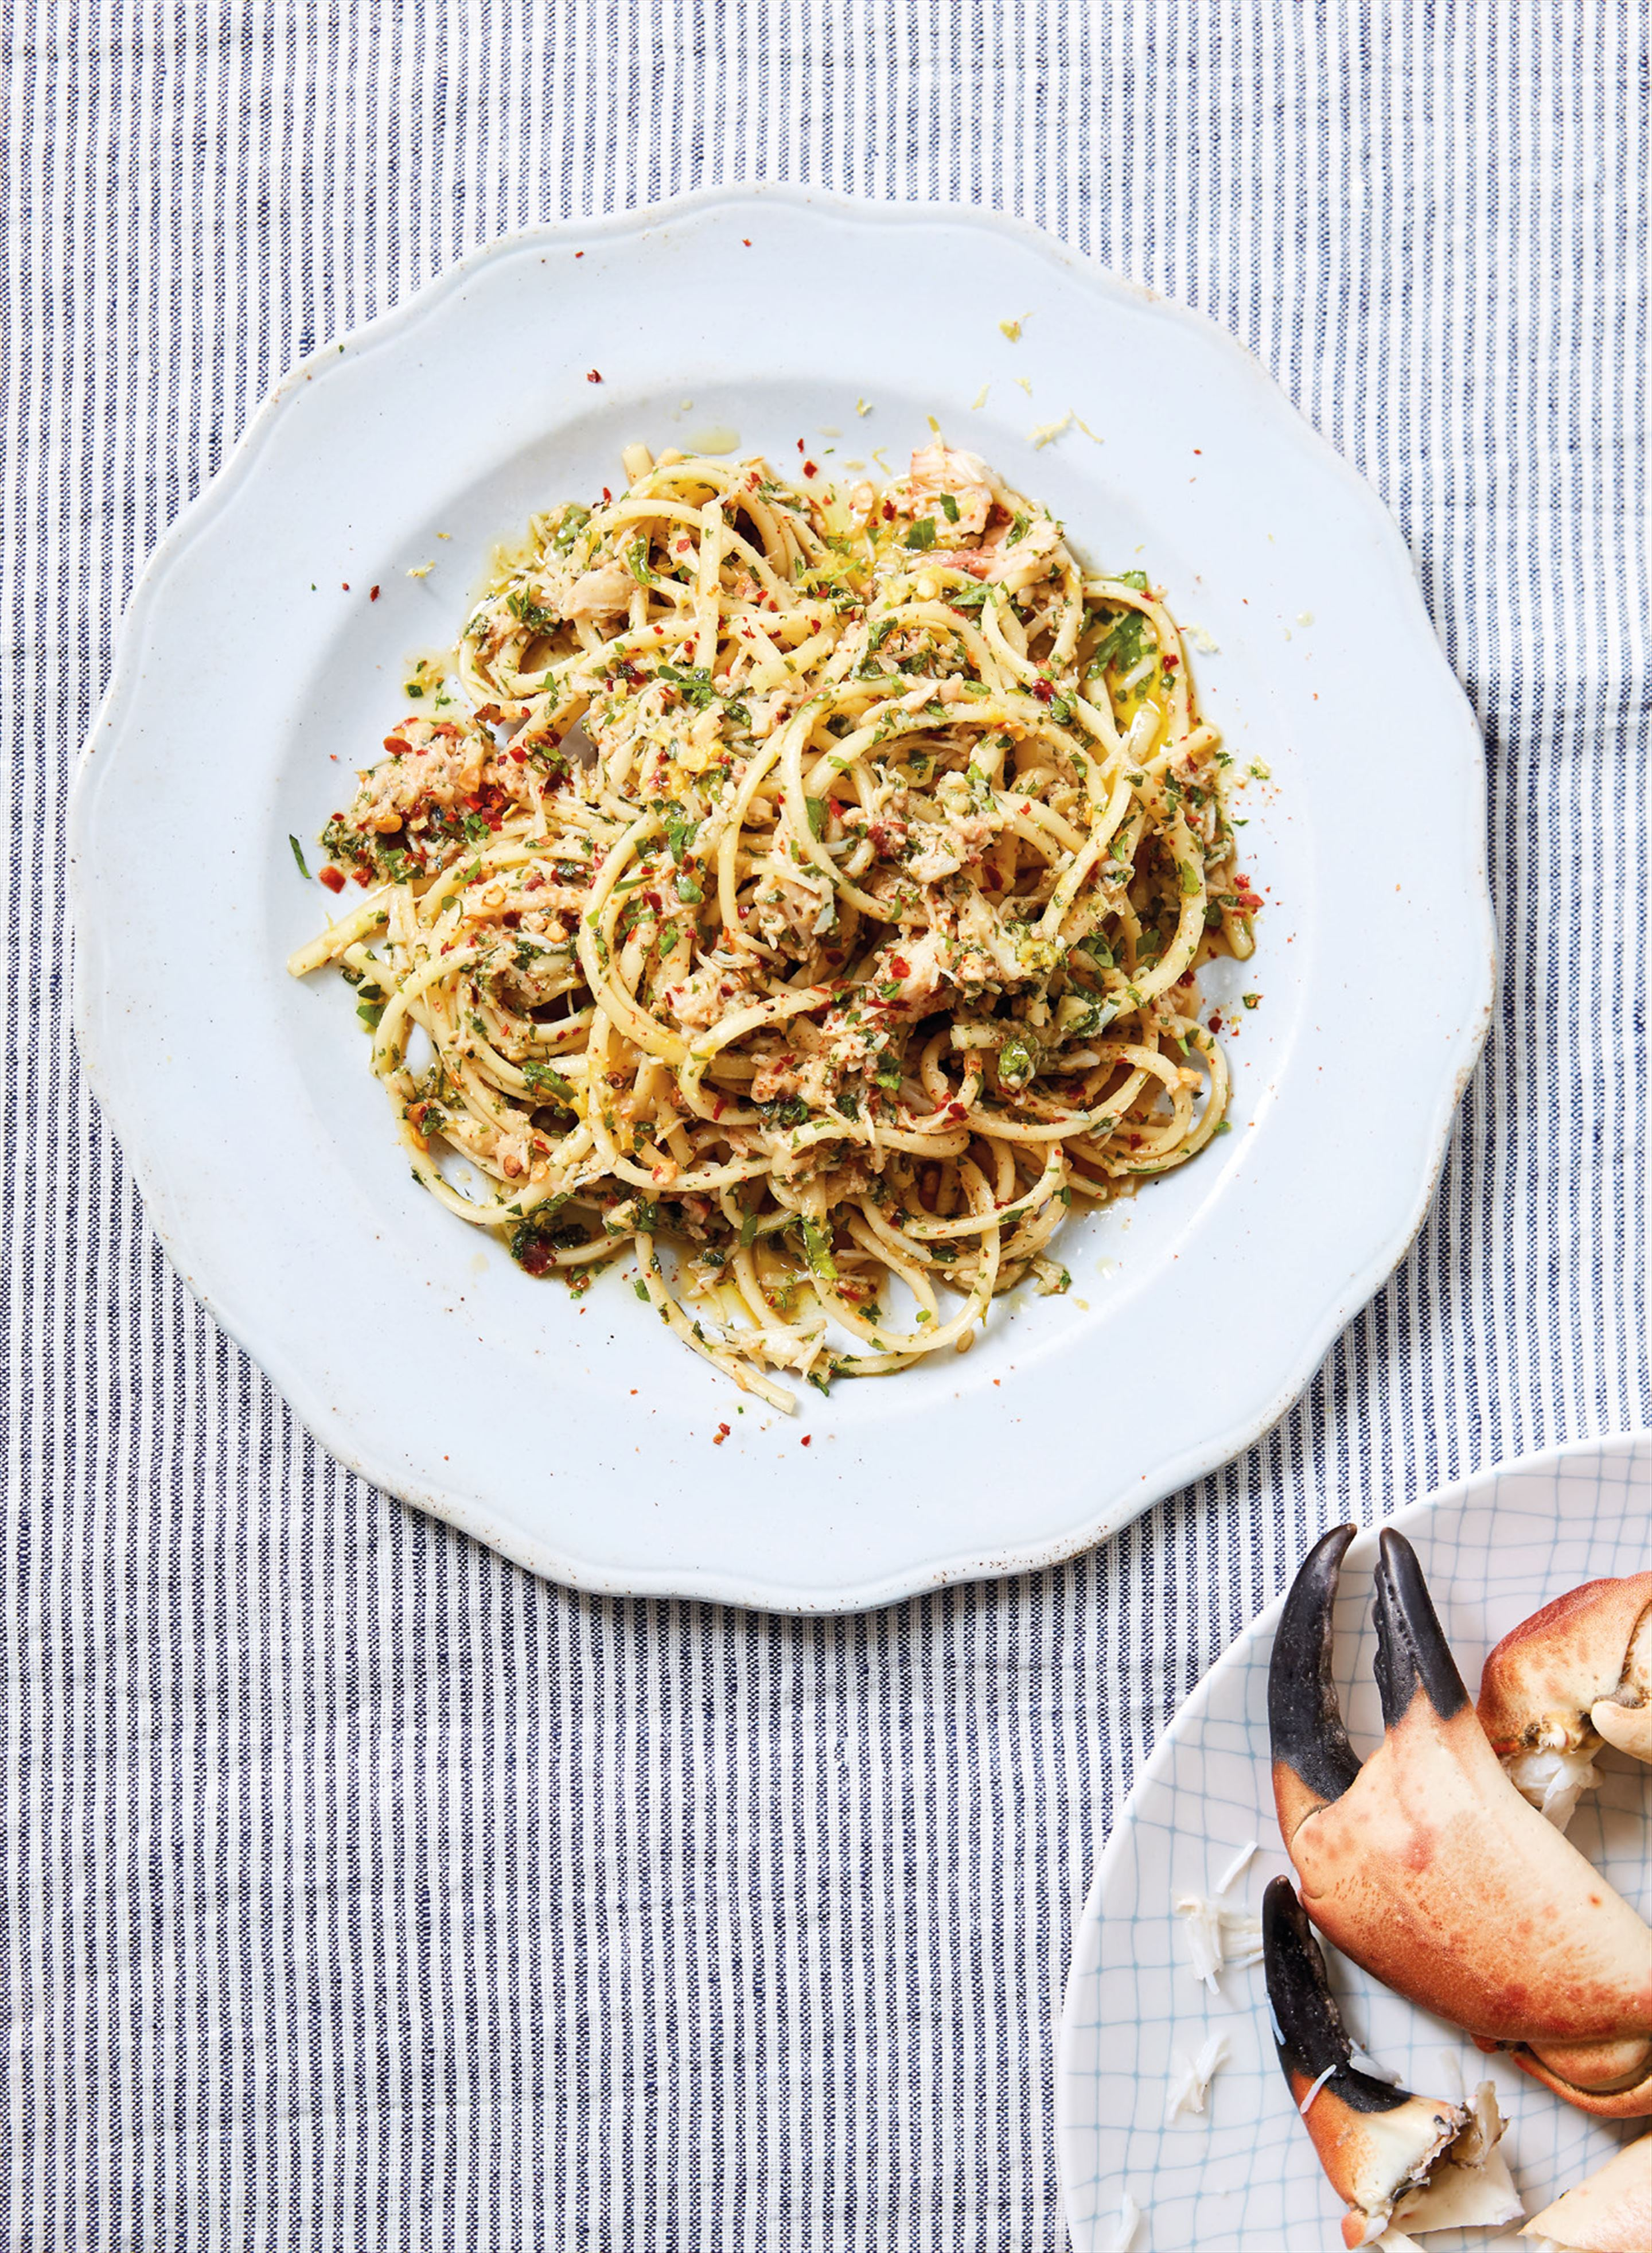 Richard's crab linguine